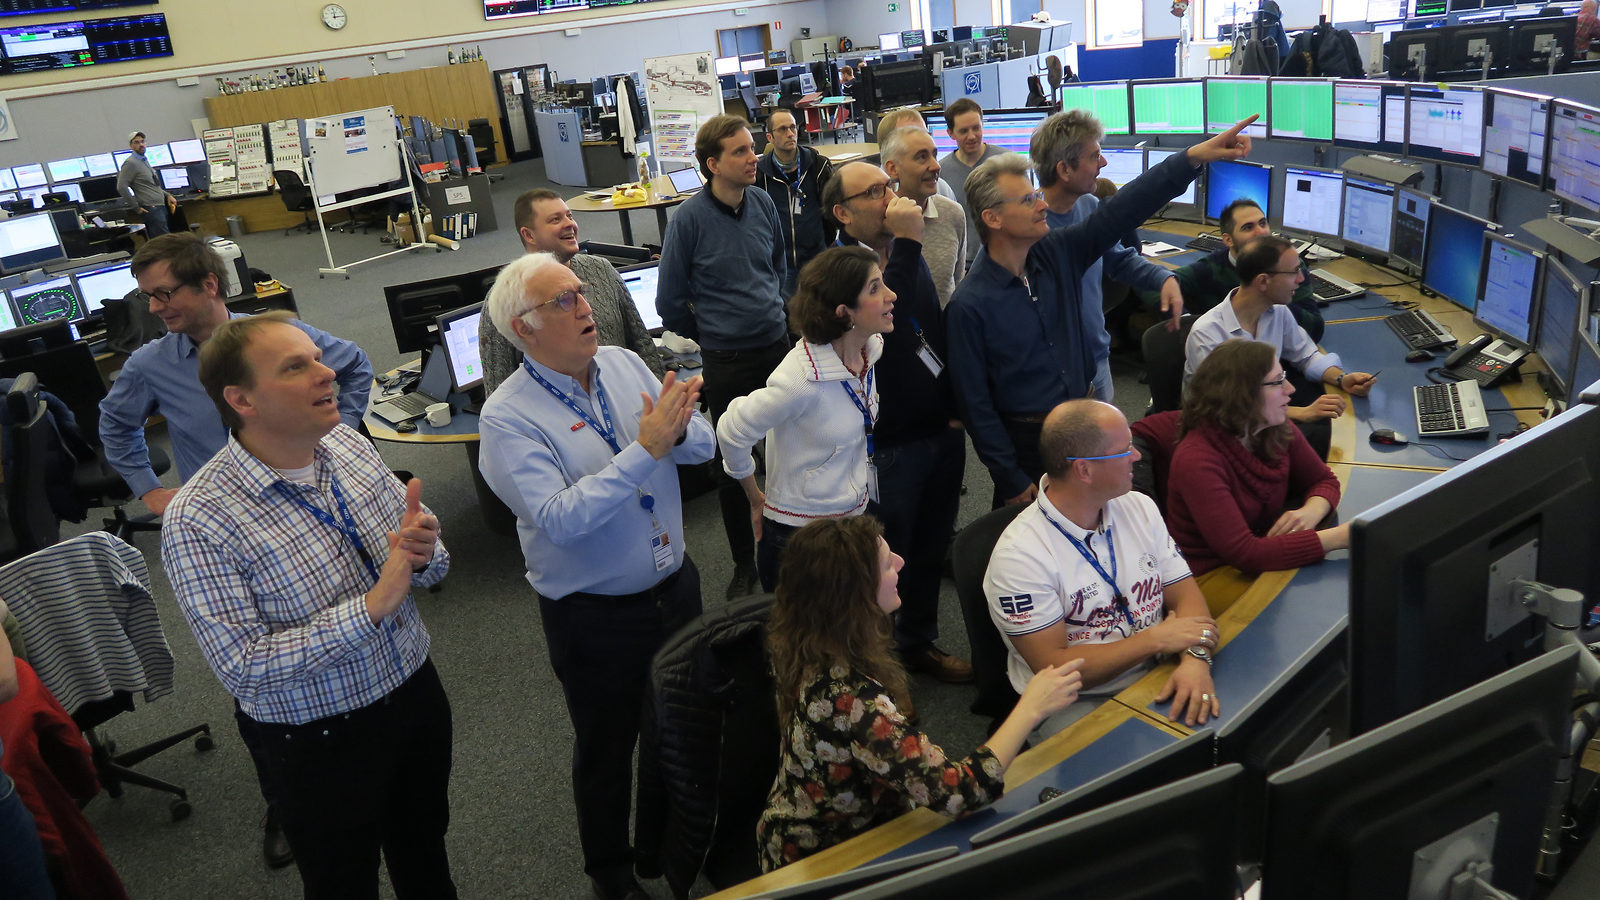 Photo accelerator operators and CERN's Director General stand together watching the process of the LHC beam on a computer screen